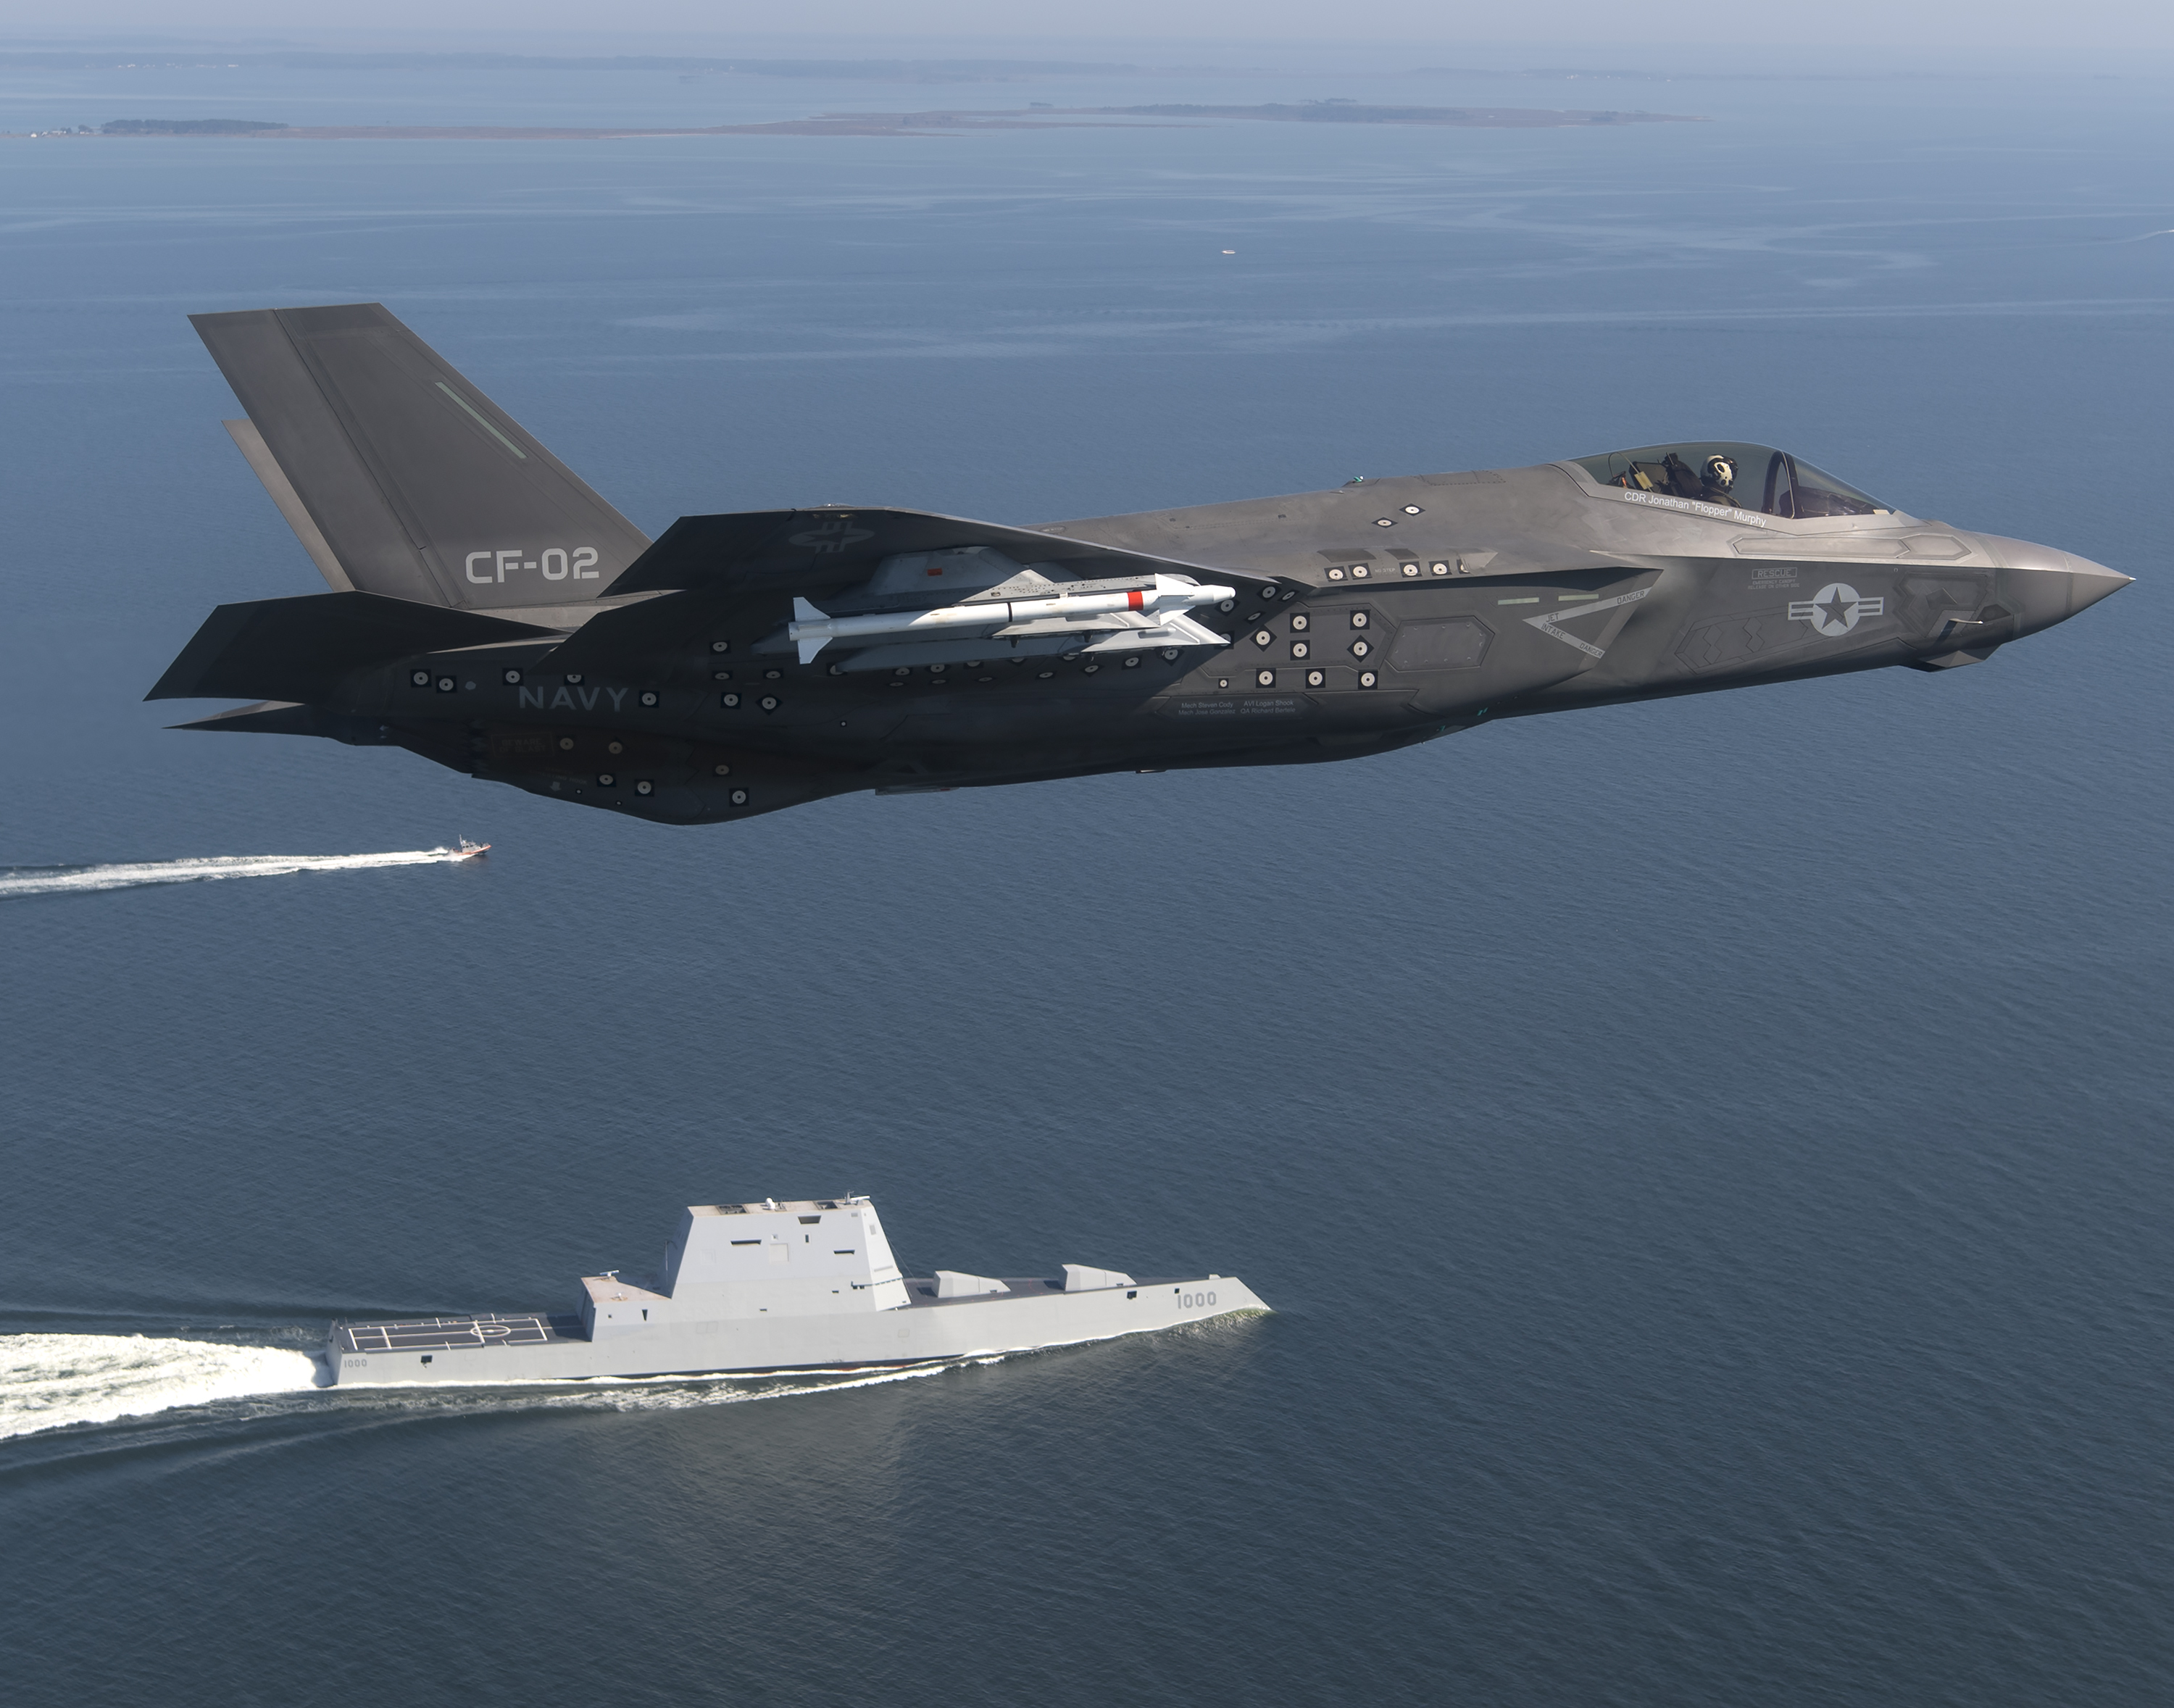 Aircraft CF-02, an F-35 Lightning II Carrier Variant attached to the F-35 Pax River Integrated Test Force (ITF) assigned to Air Test and Evaluation Squadron (VX) 23 completes a flyover of the guided-missile destroyer USS Zumwalt (DDG-1000). US Navy Photo